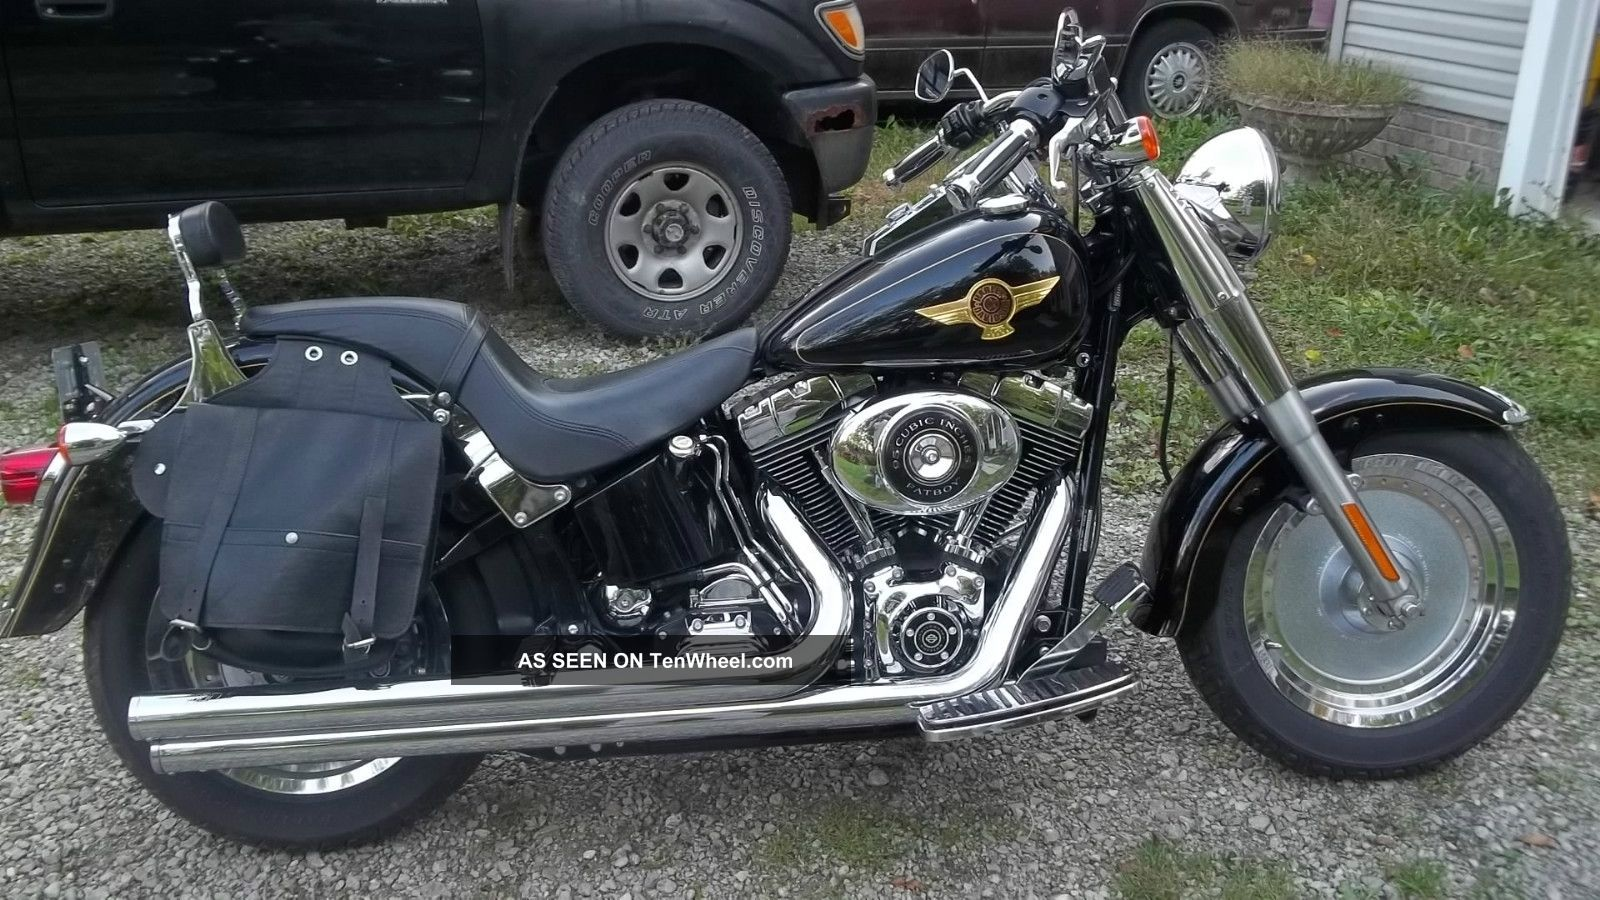 2005 Harley Fatboy Fat Boy 15th Anniversary Ltd Ed.  95 Cu 11k Mi A. Softail photo